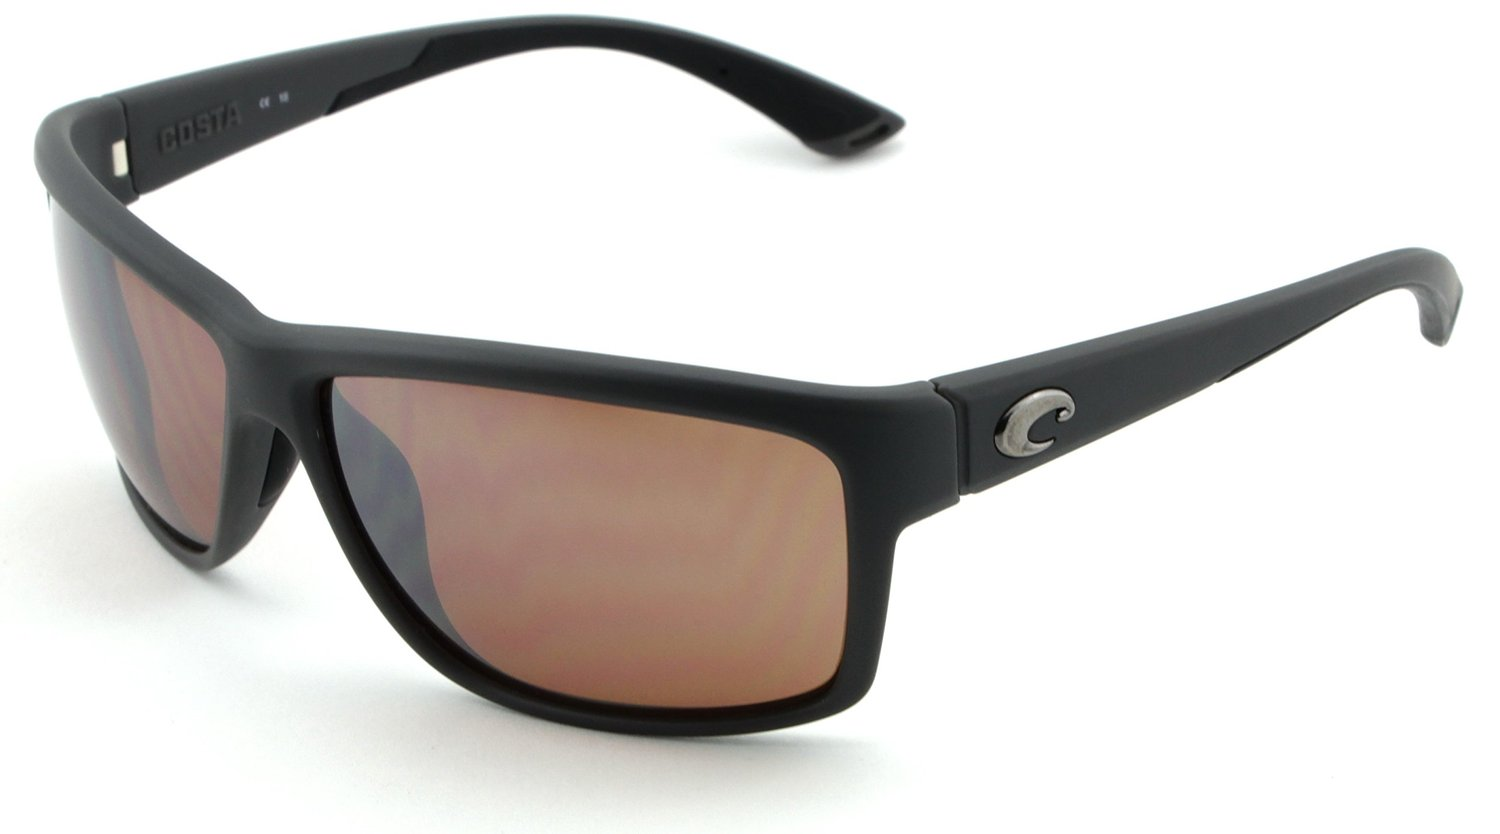 Costa Del Mar Mag Bay Polarized Matte Gray Sunglasses - AA-98-OSCP